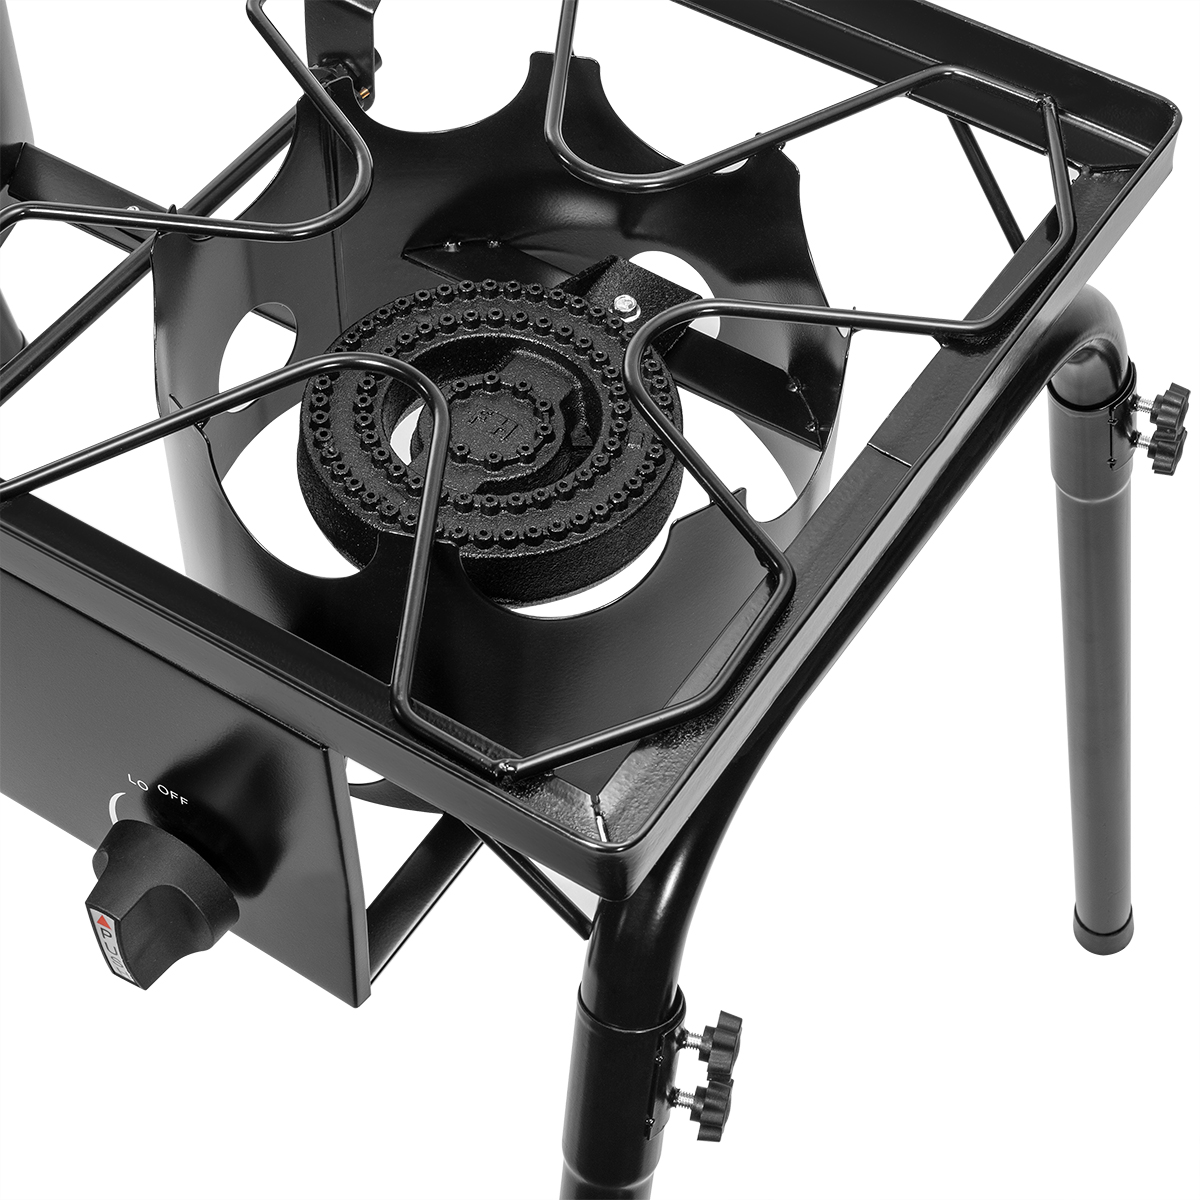 Bbq Tools Accessories 2 Burner Propane Stove Gas Outdoor Portable Camping Bbq High Pressure Regulator Home Garden